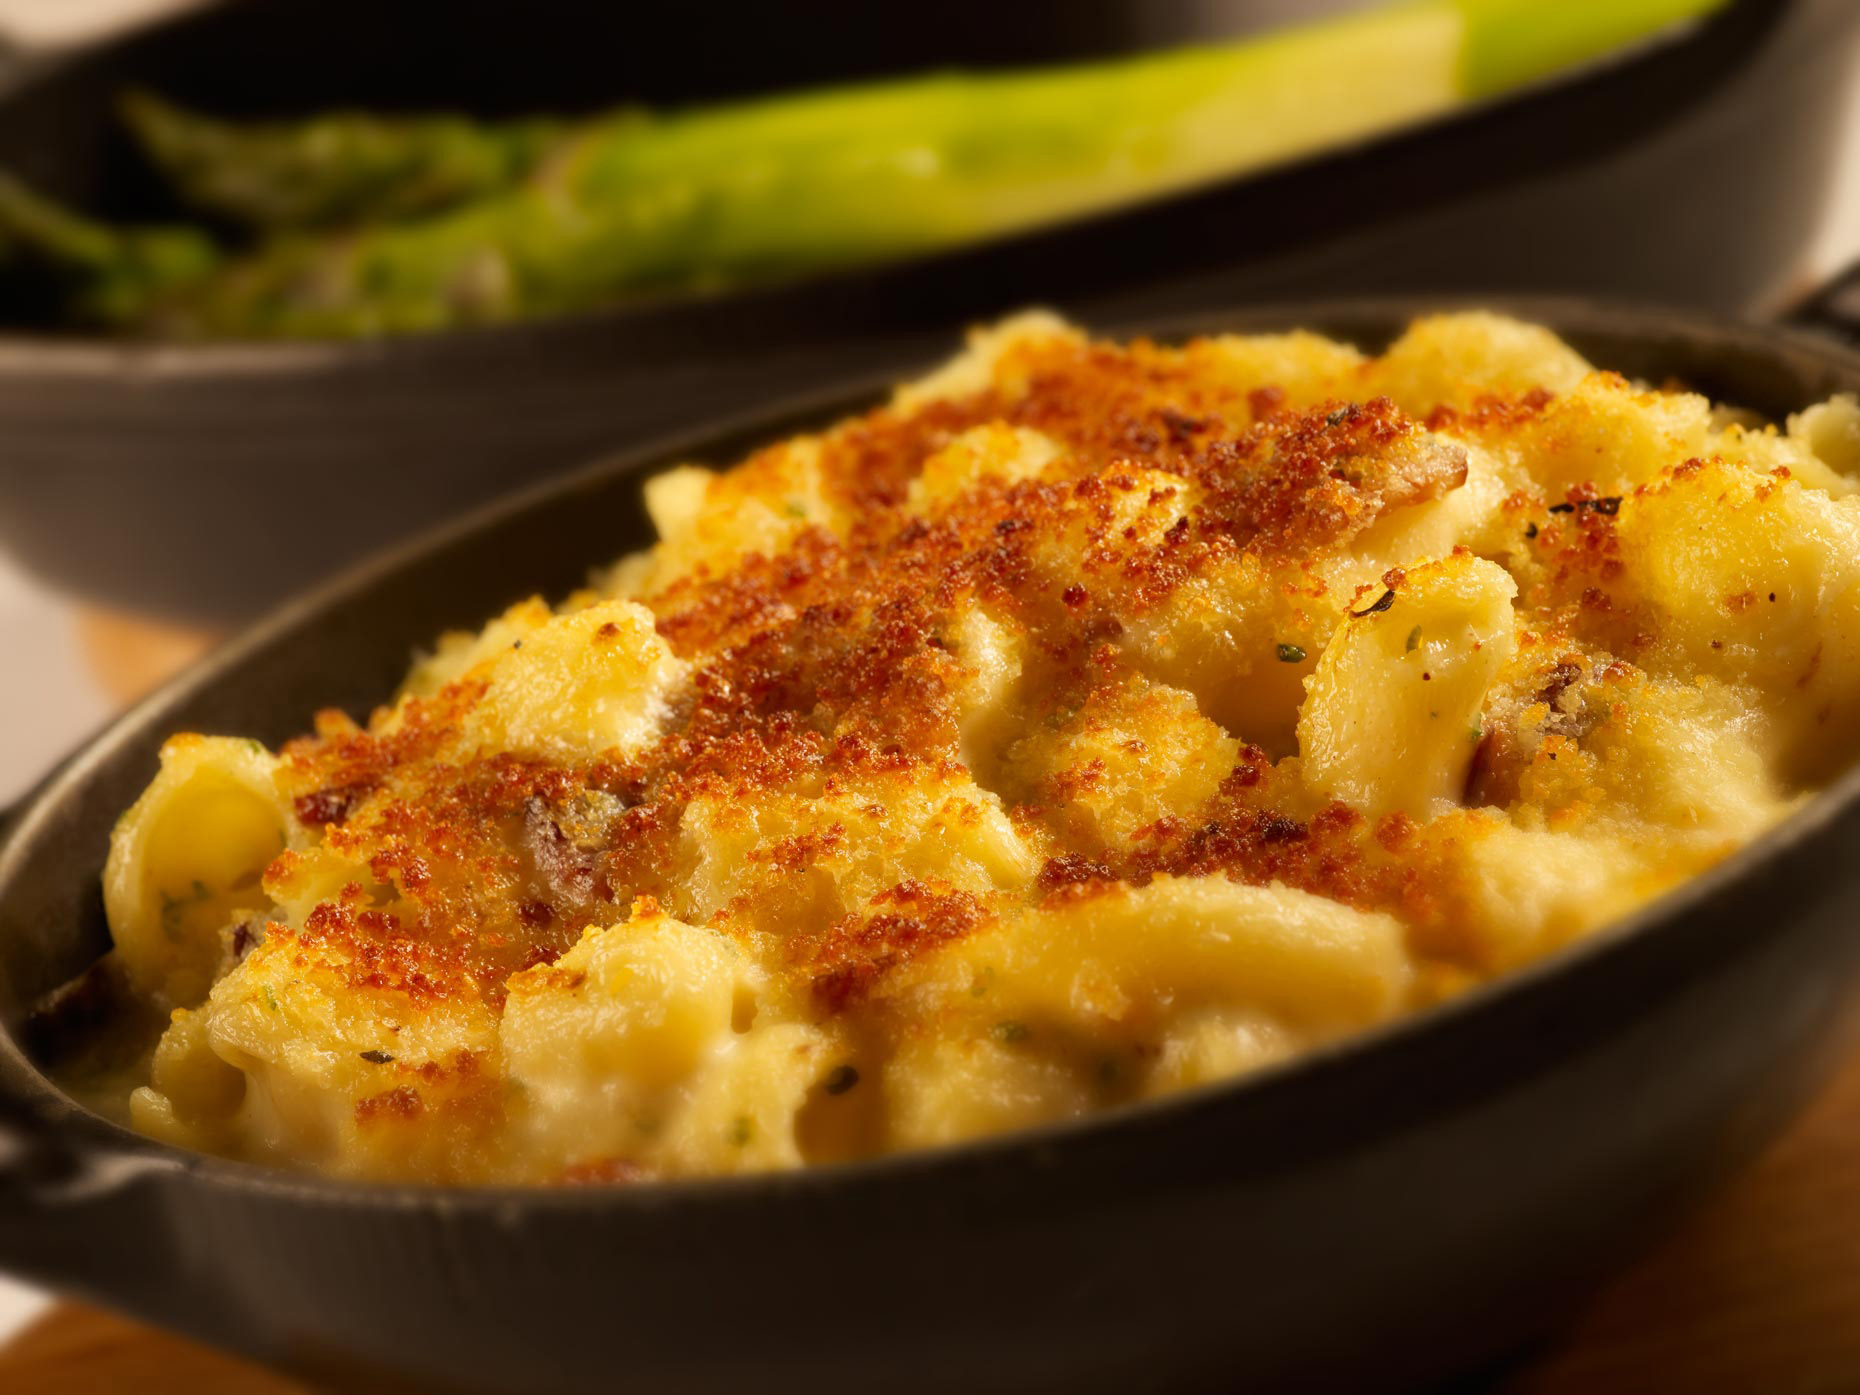 Food Photography | Macaroni & Cheese